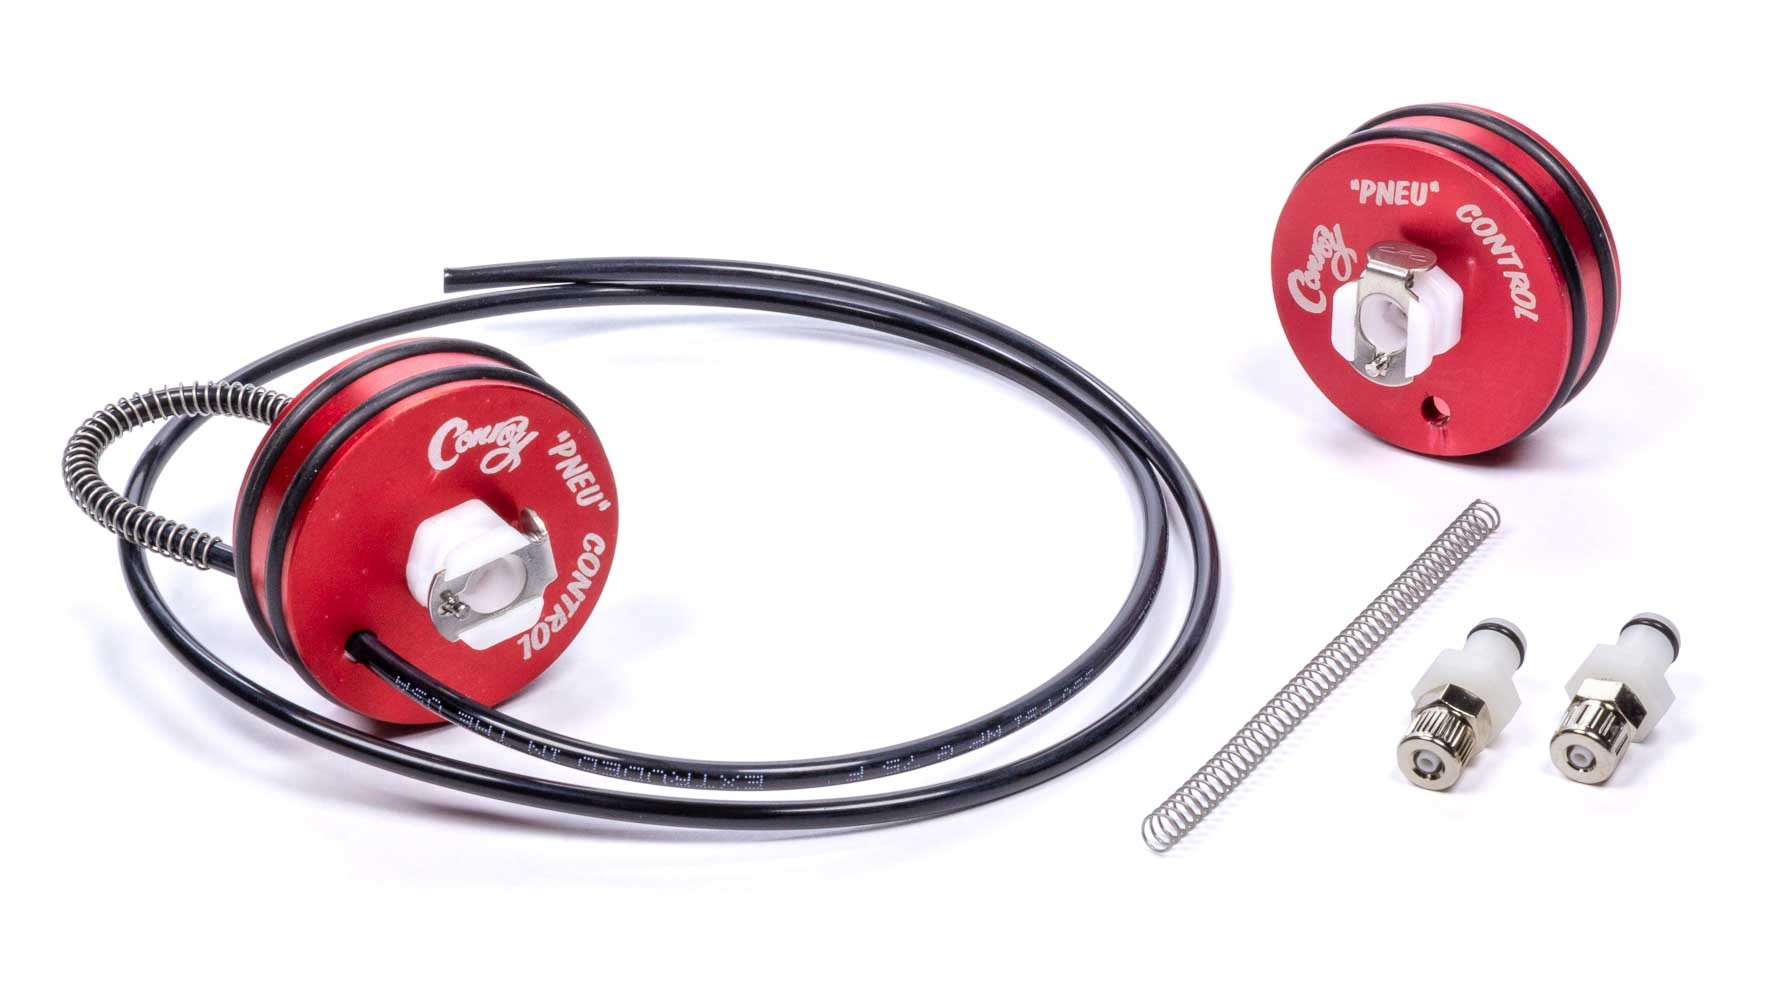 Pneu Bleeder Kit for Winters U/L Axle